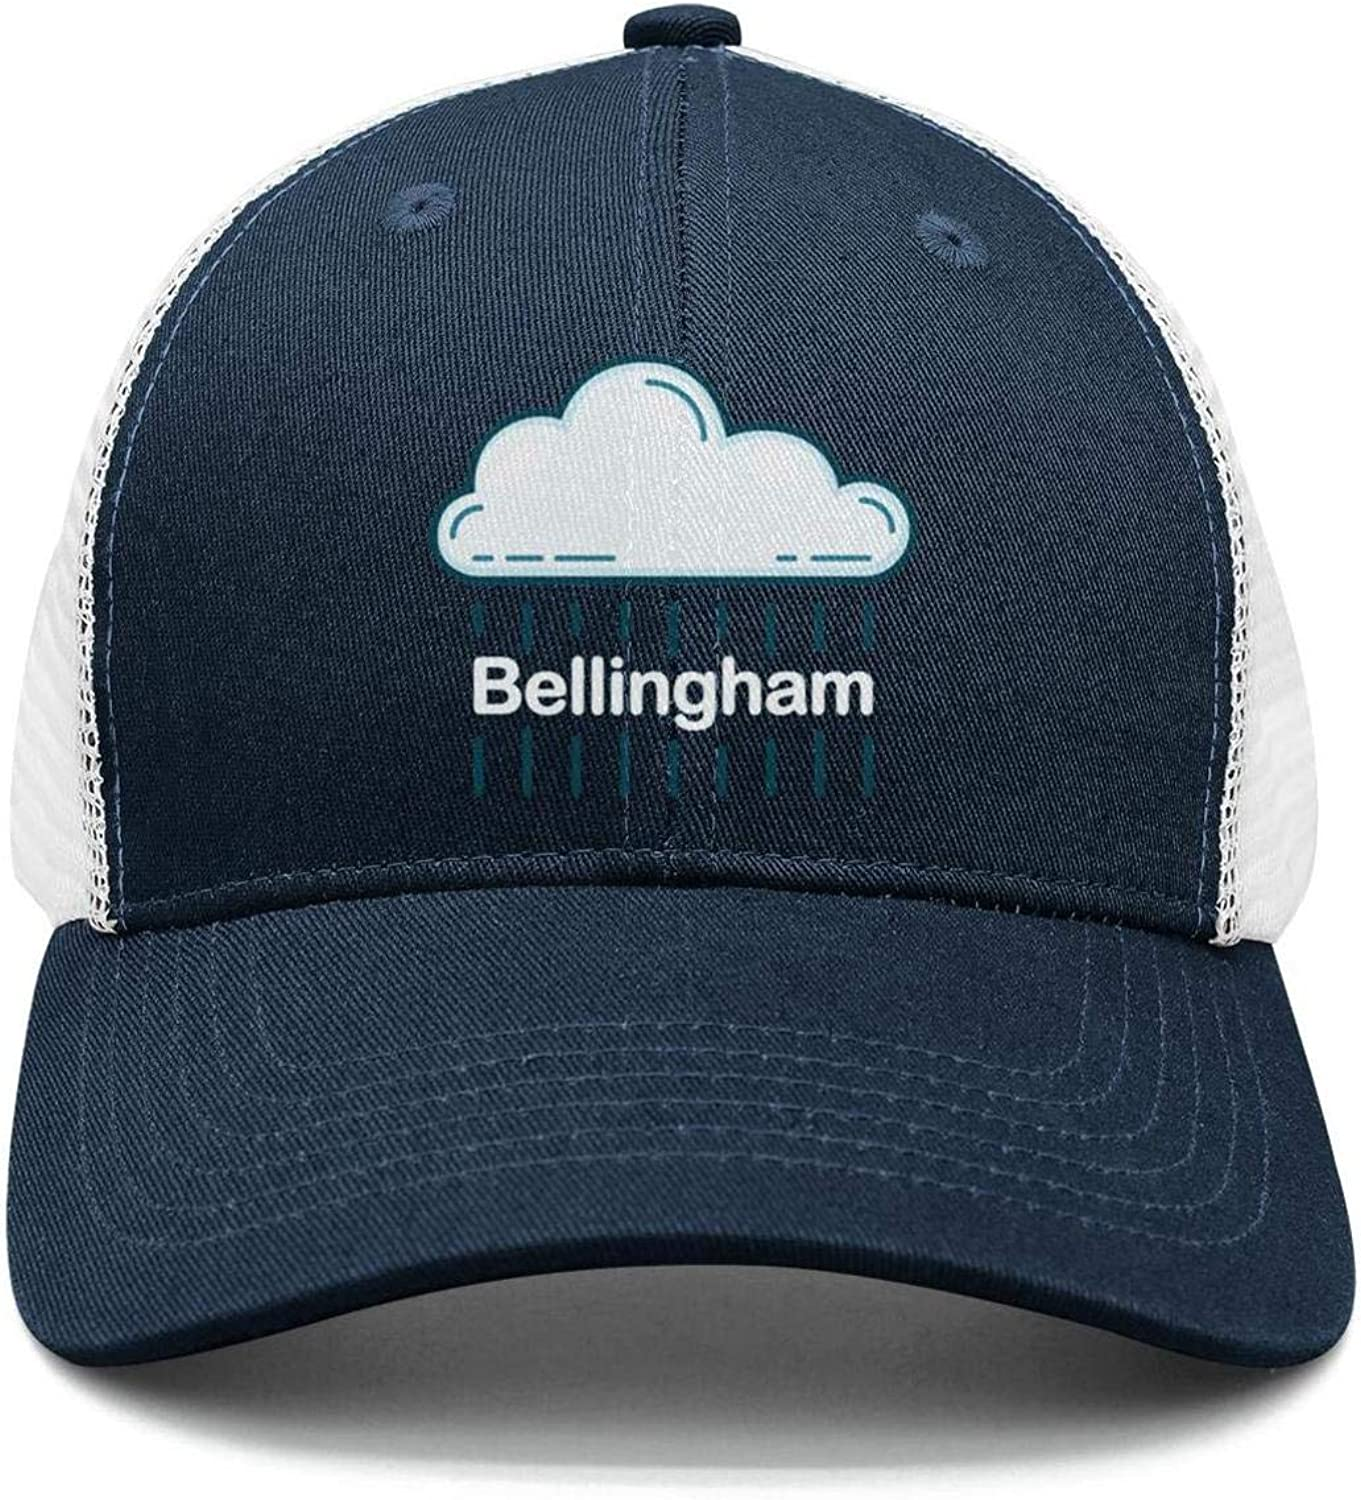 Cotton Casual Trucker hat Adjustable Fits Mesh Baseball Caps for Man and Woman smsdpmc Bellingham-Funny-Washington